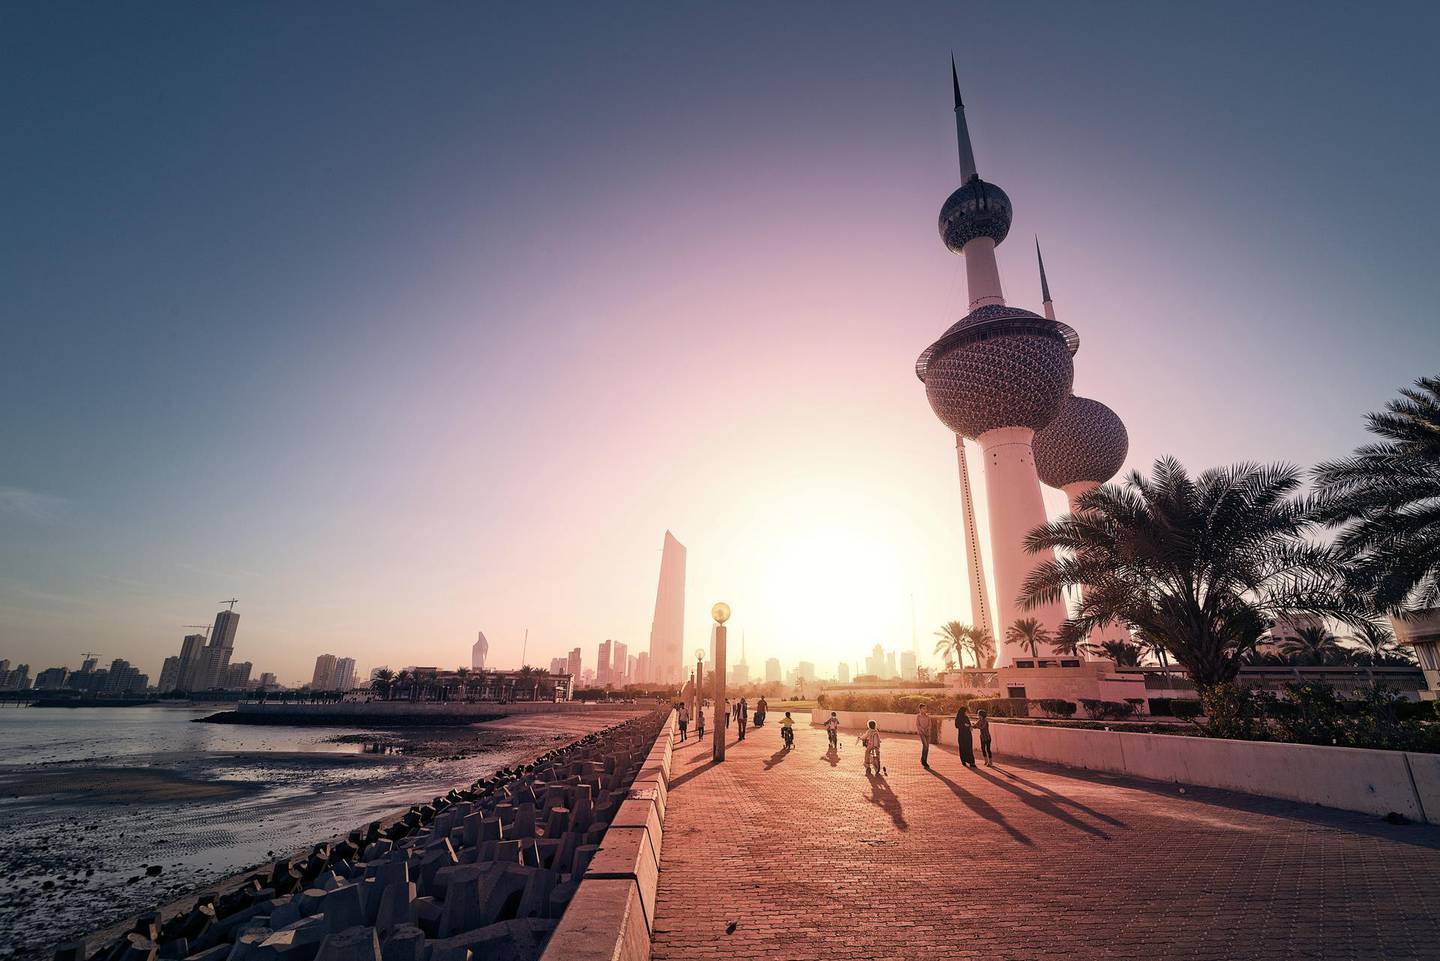 View of Kuwait Towers with Kuwait City in the background at sunset.